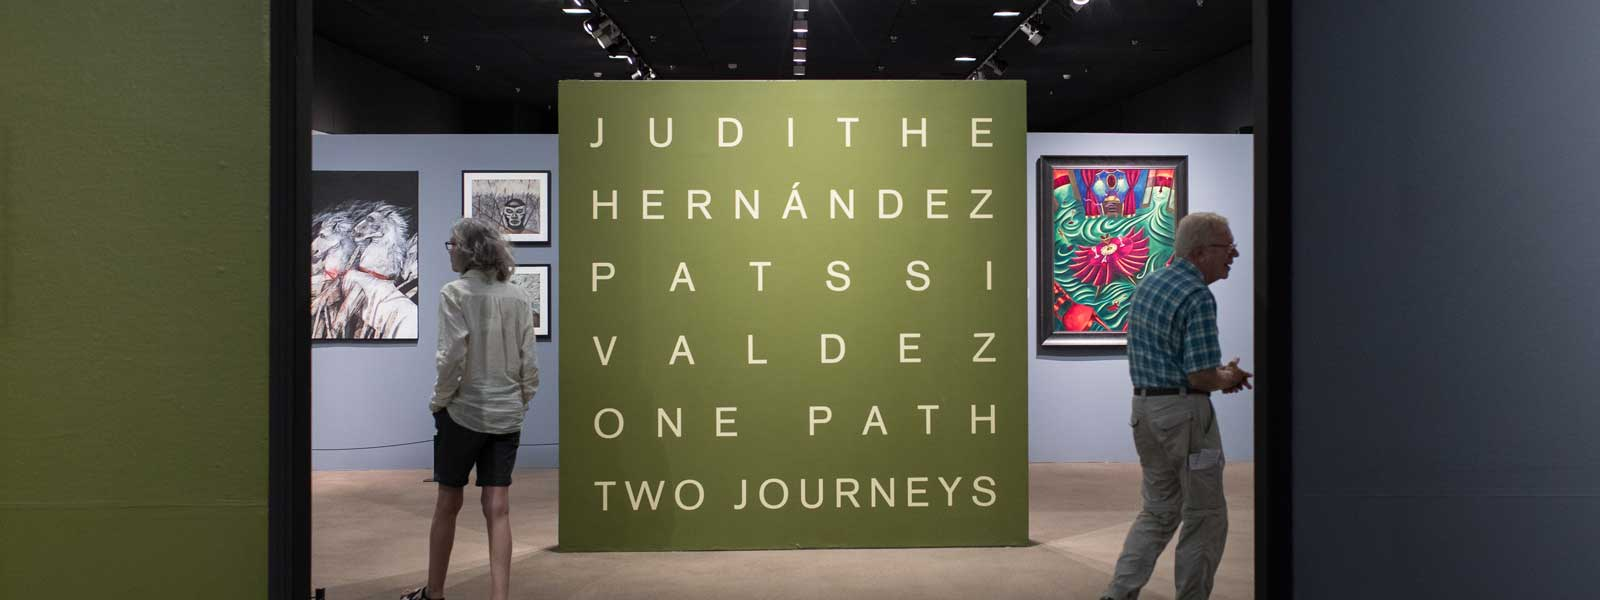 Judithe Hernandez and Patssi Valdez One Path Two Journeys